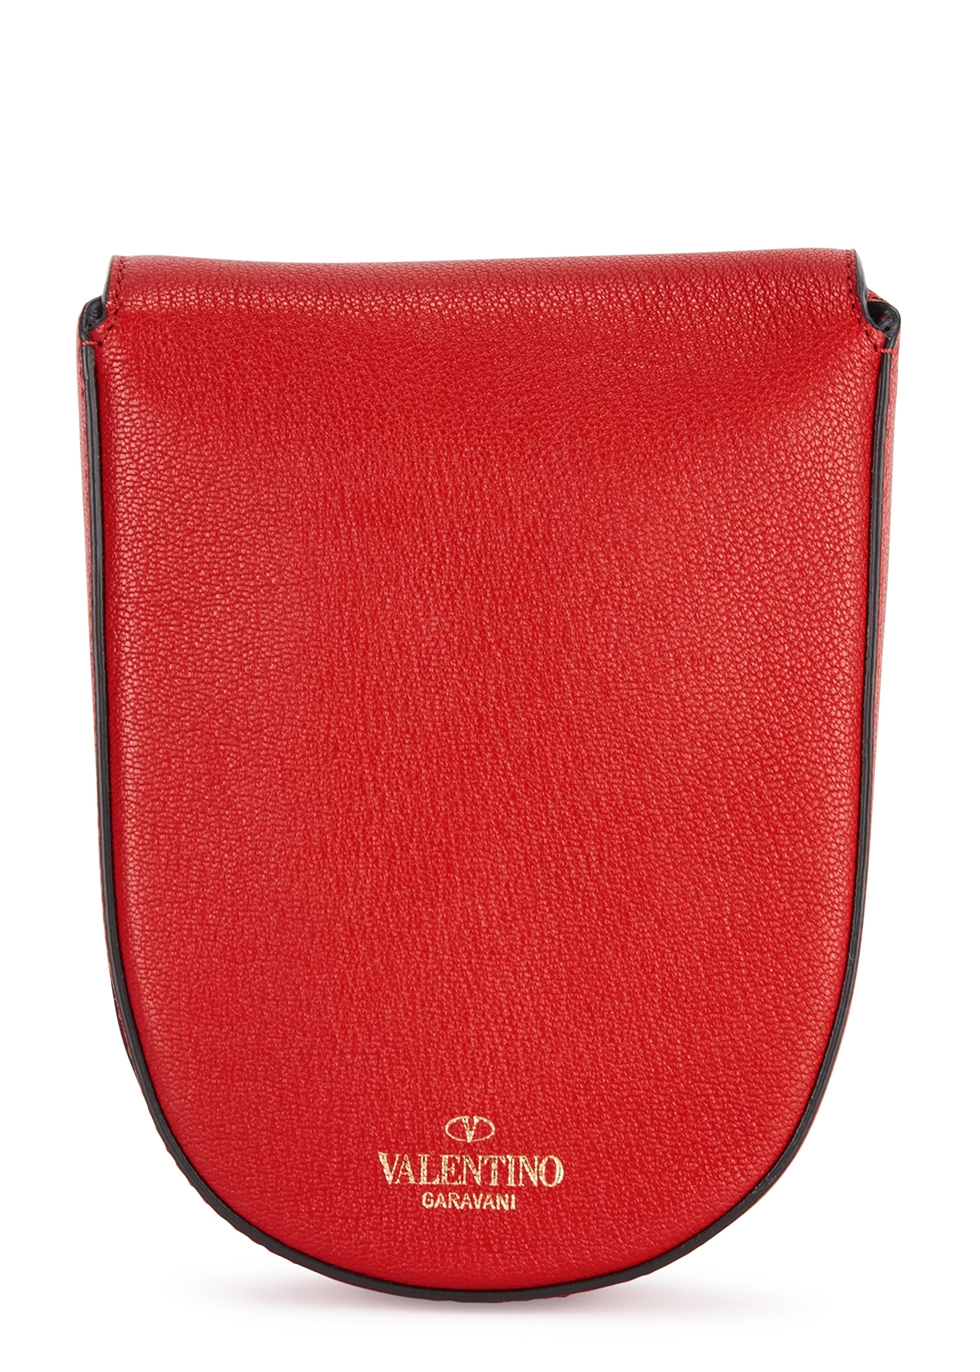 VRing red leather cross-body bag - Valentino Garavani